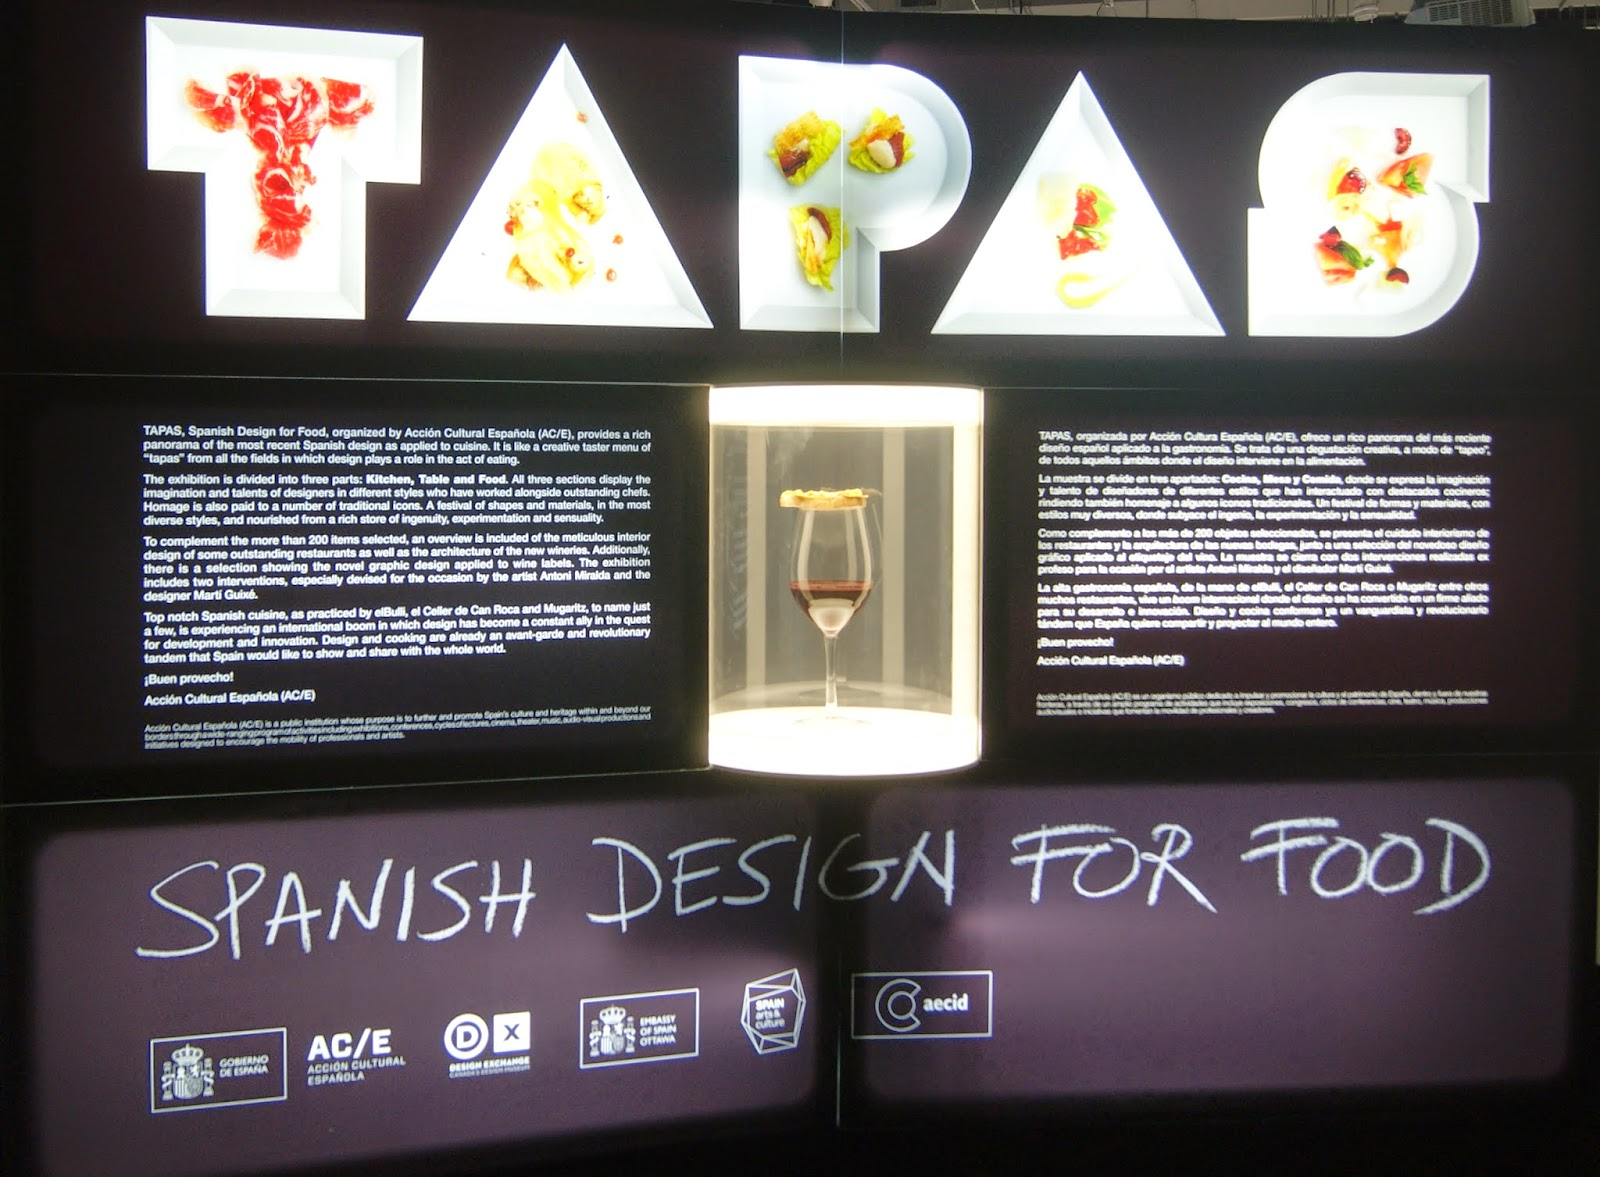 Tapas: Spanish Design For Food Exhibit at the  Exchange, Toronto, Ontario, Canada, Foodie,culture,exhibition,free, the purple scarf, Melanie_ps